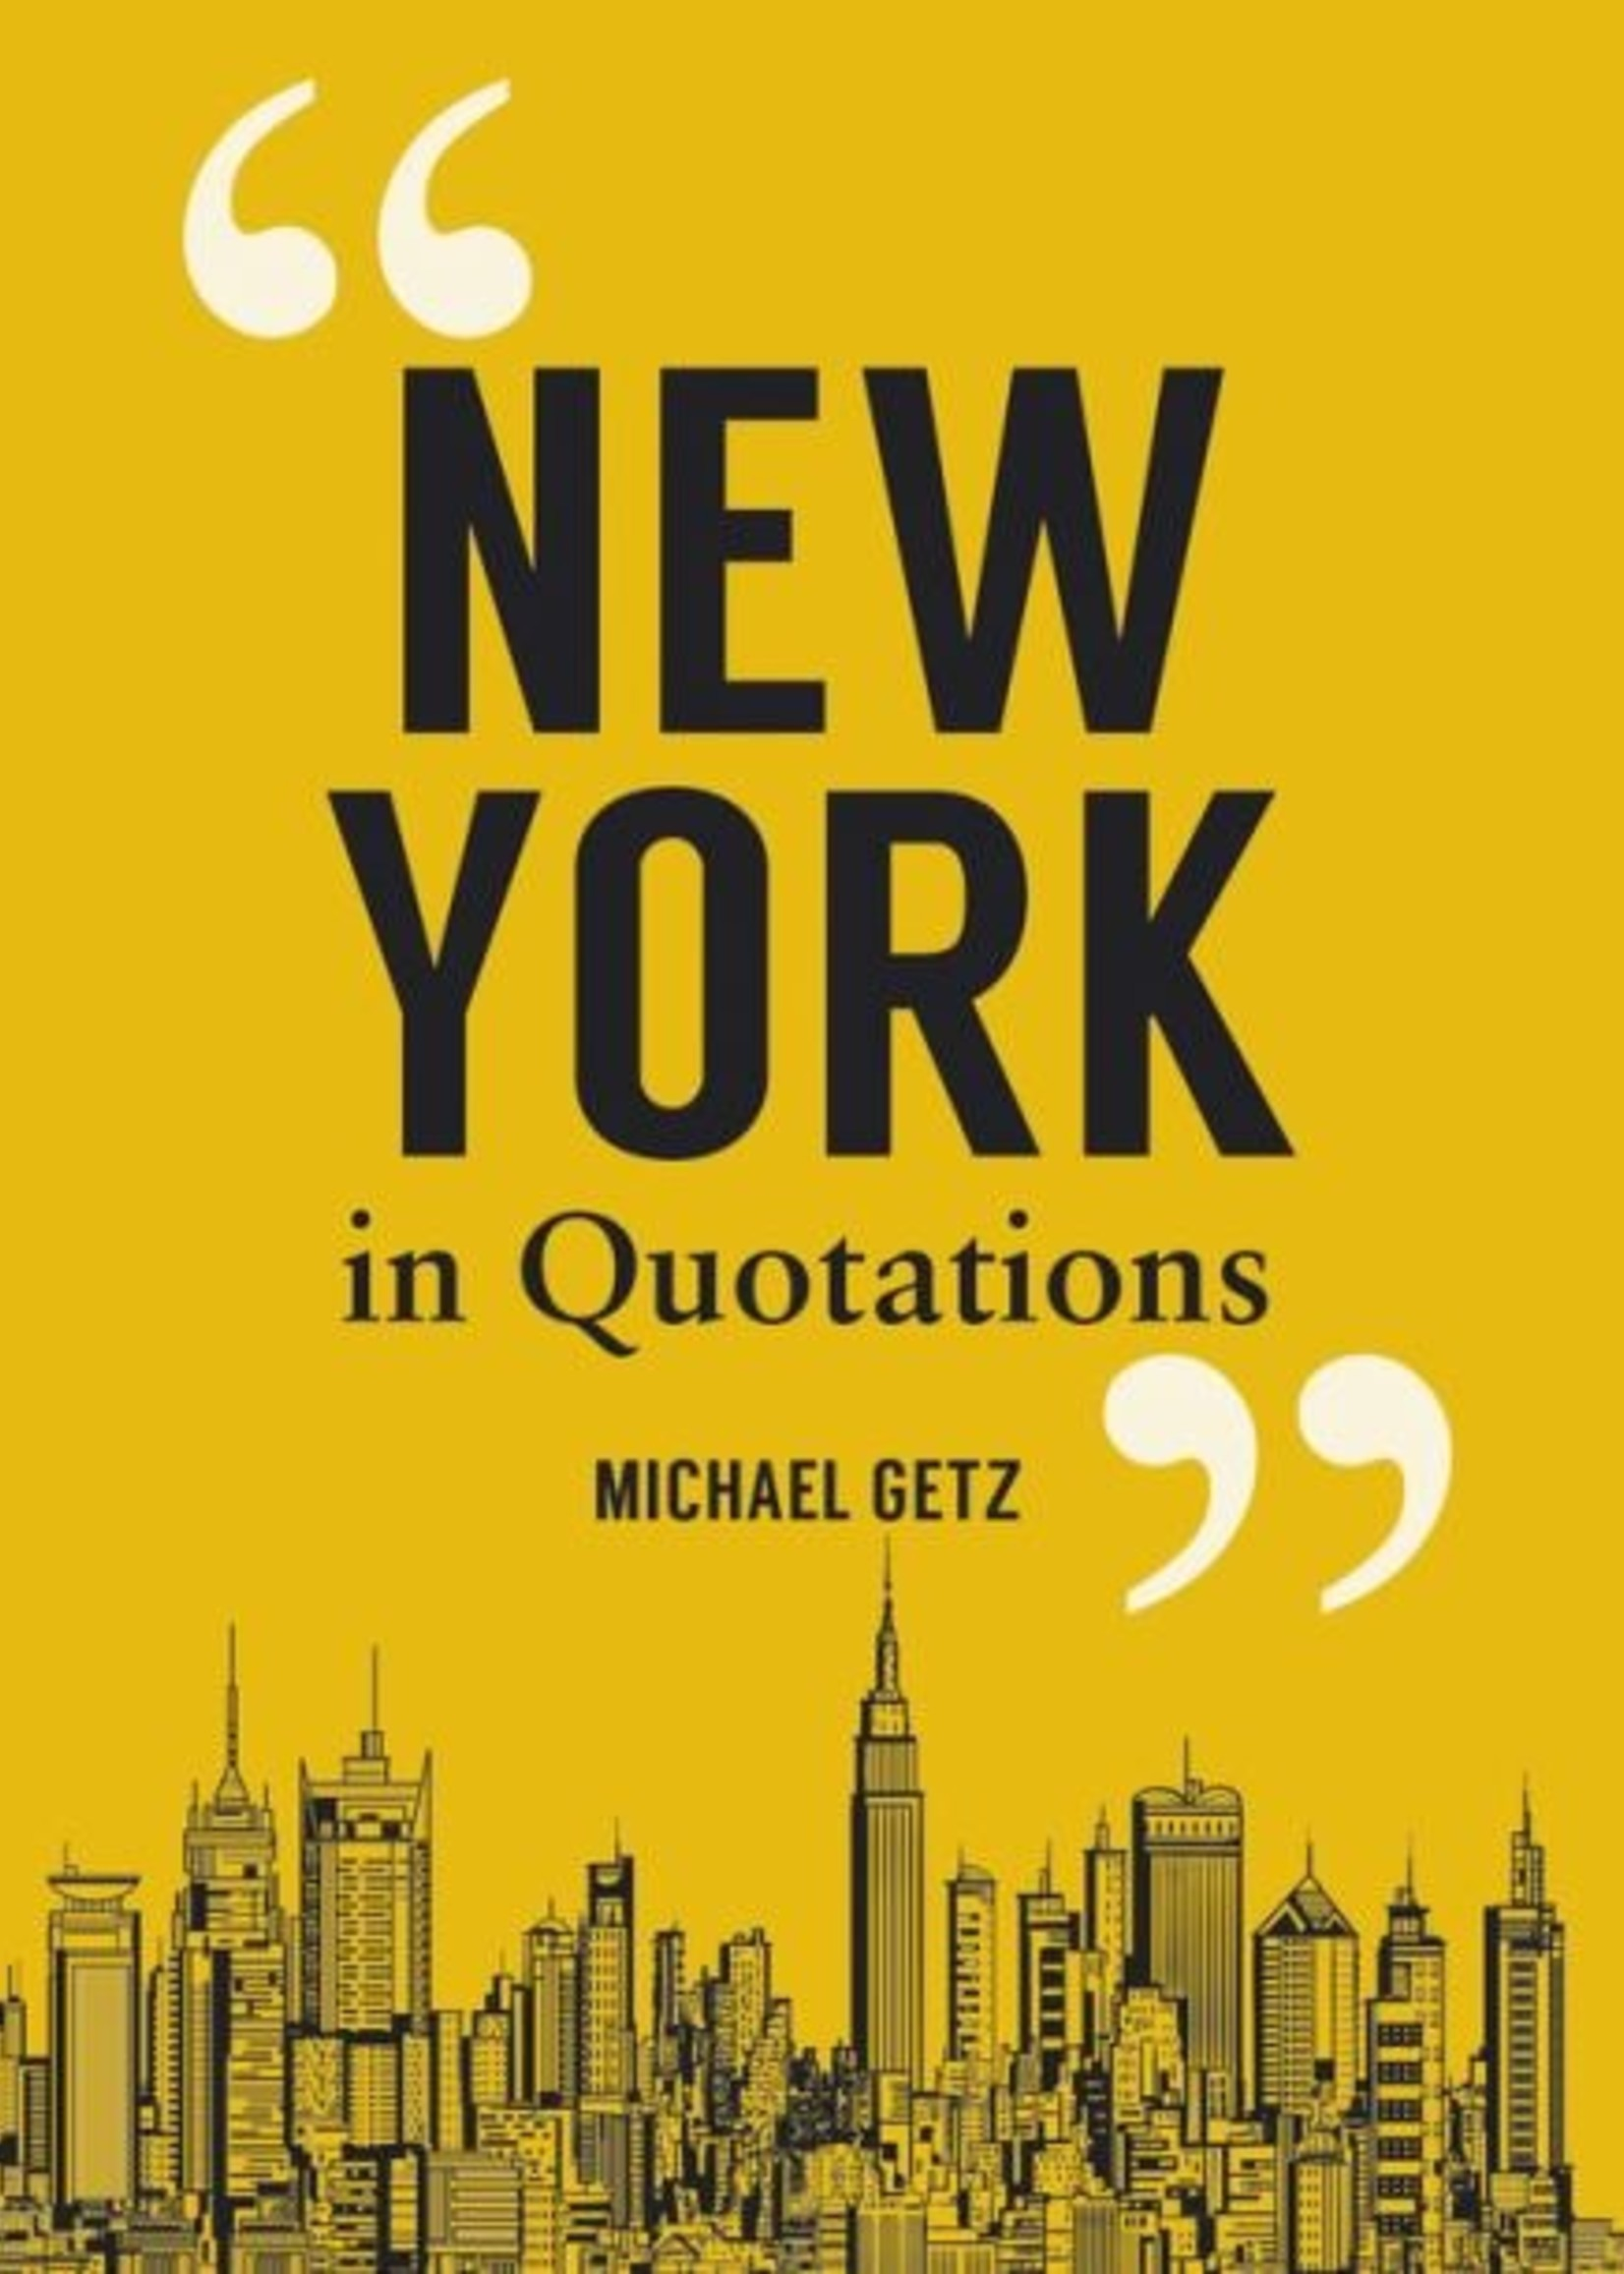 hachette book group hachette new york in quotations book